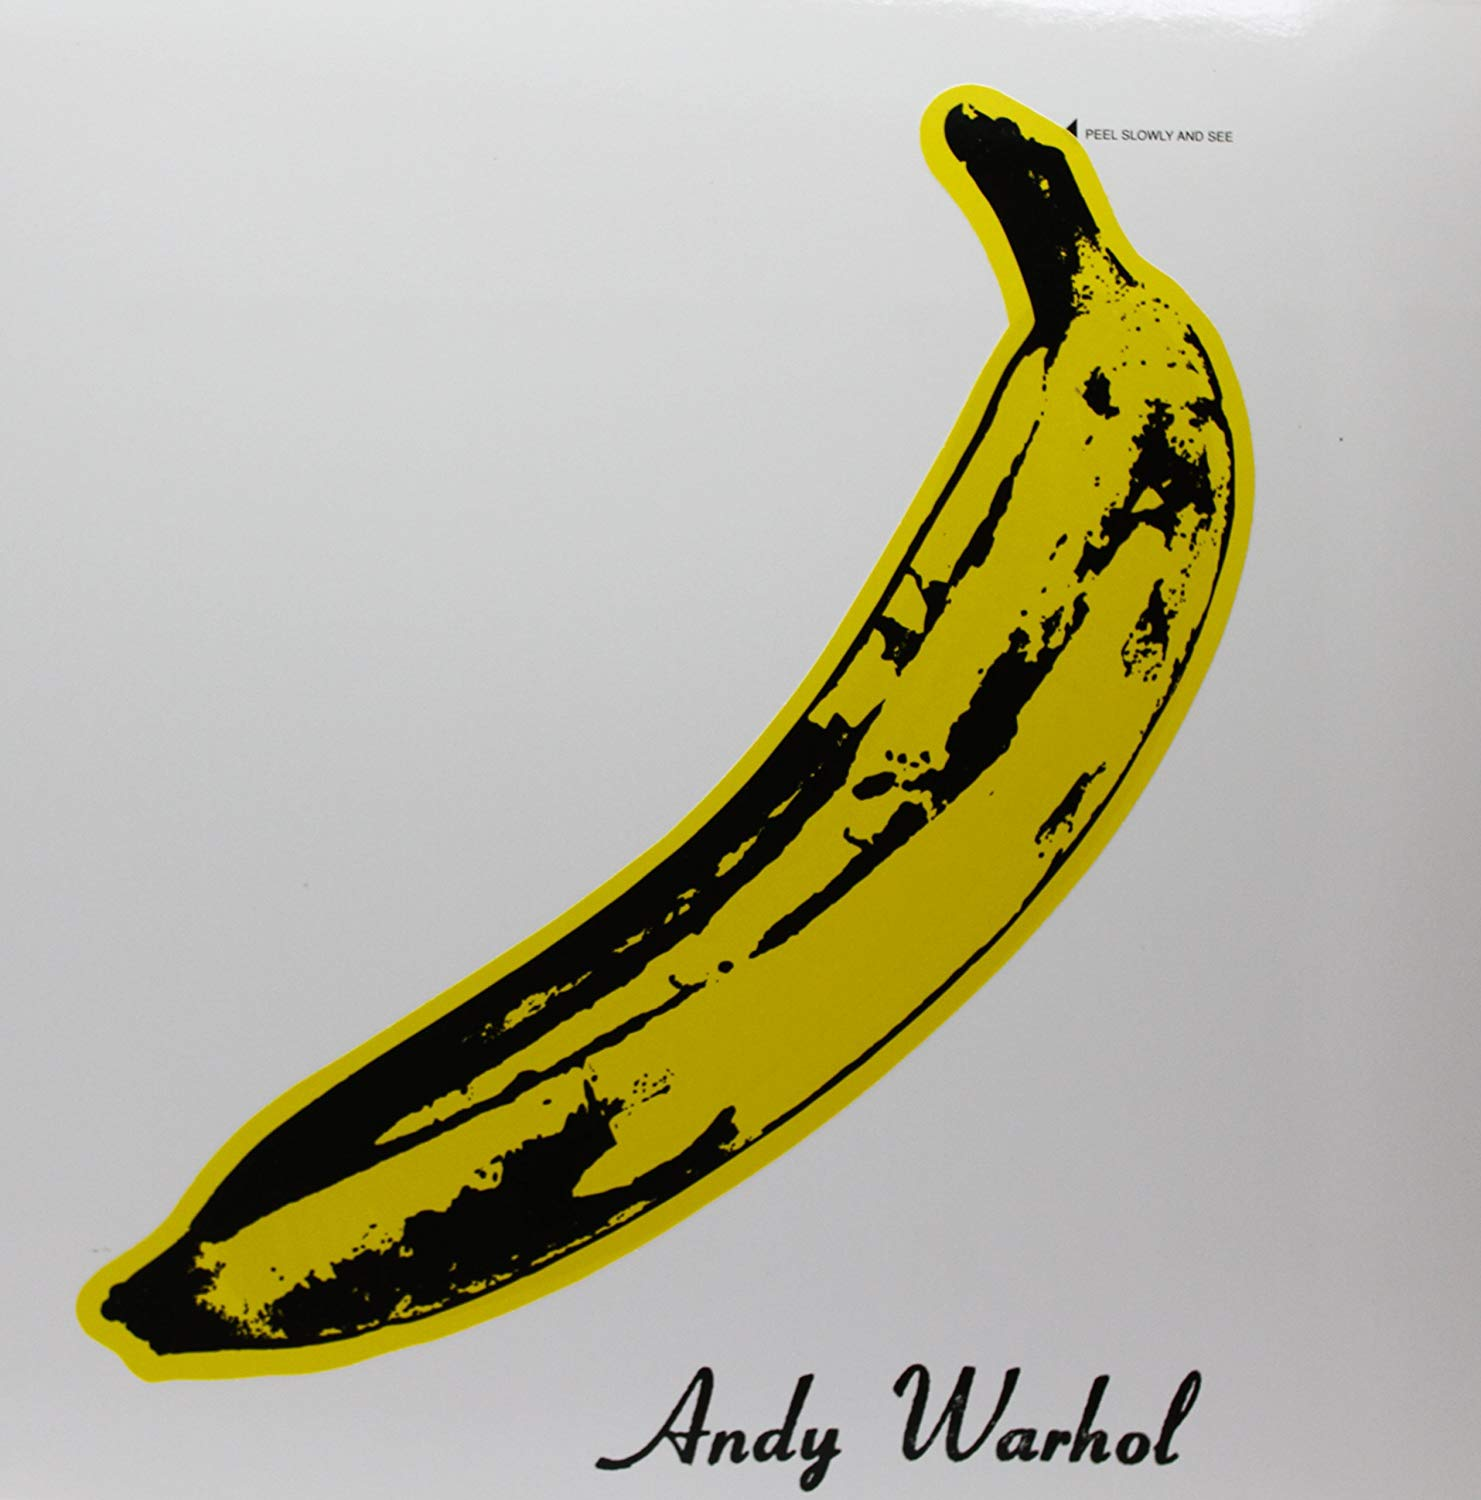 THE VELVET UNDERGROUND & NICO $28 produced by andy warhol @ 1967 Universal Records